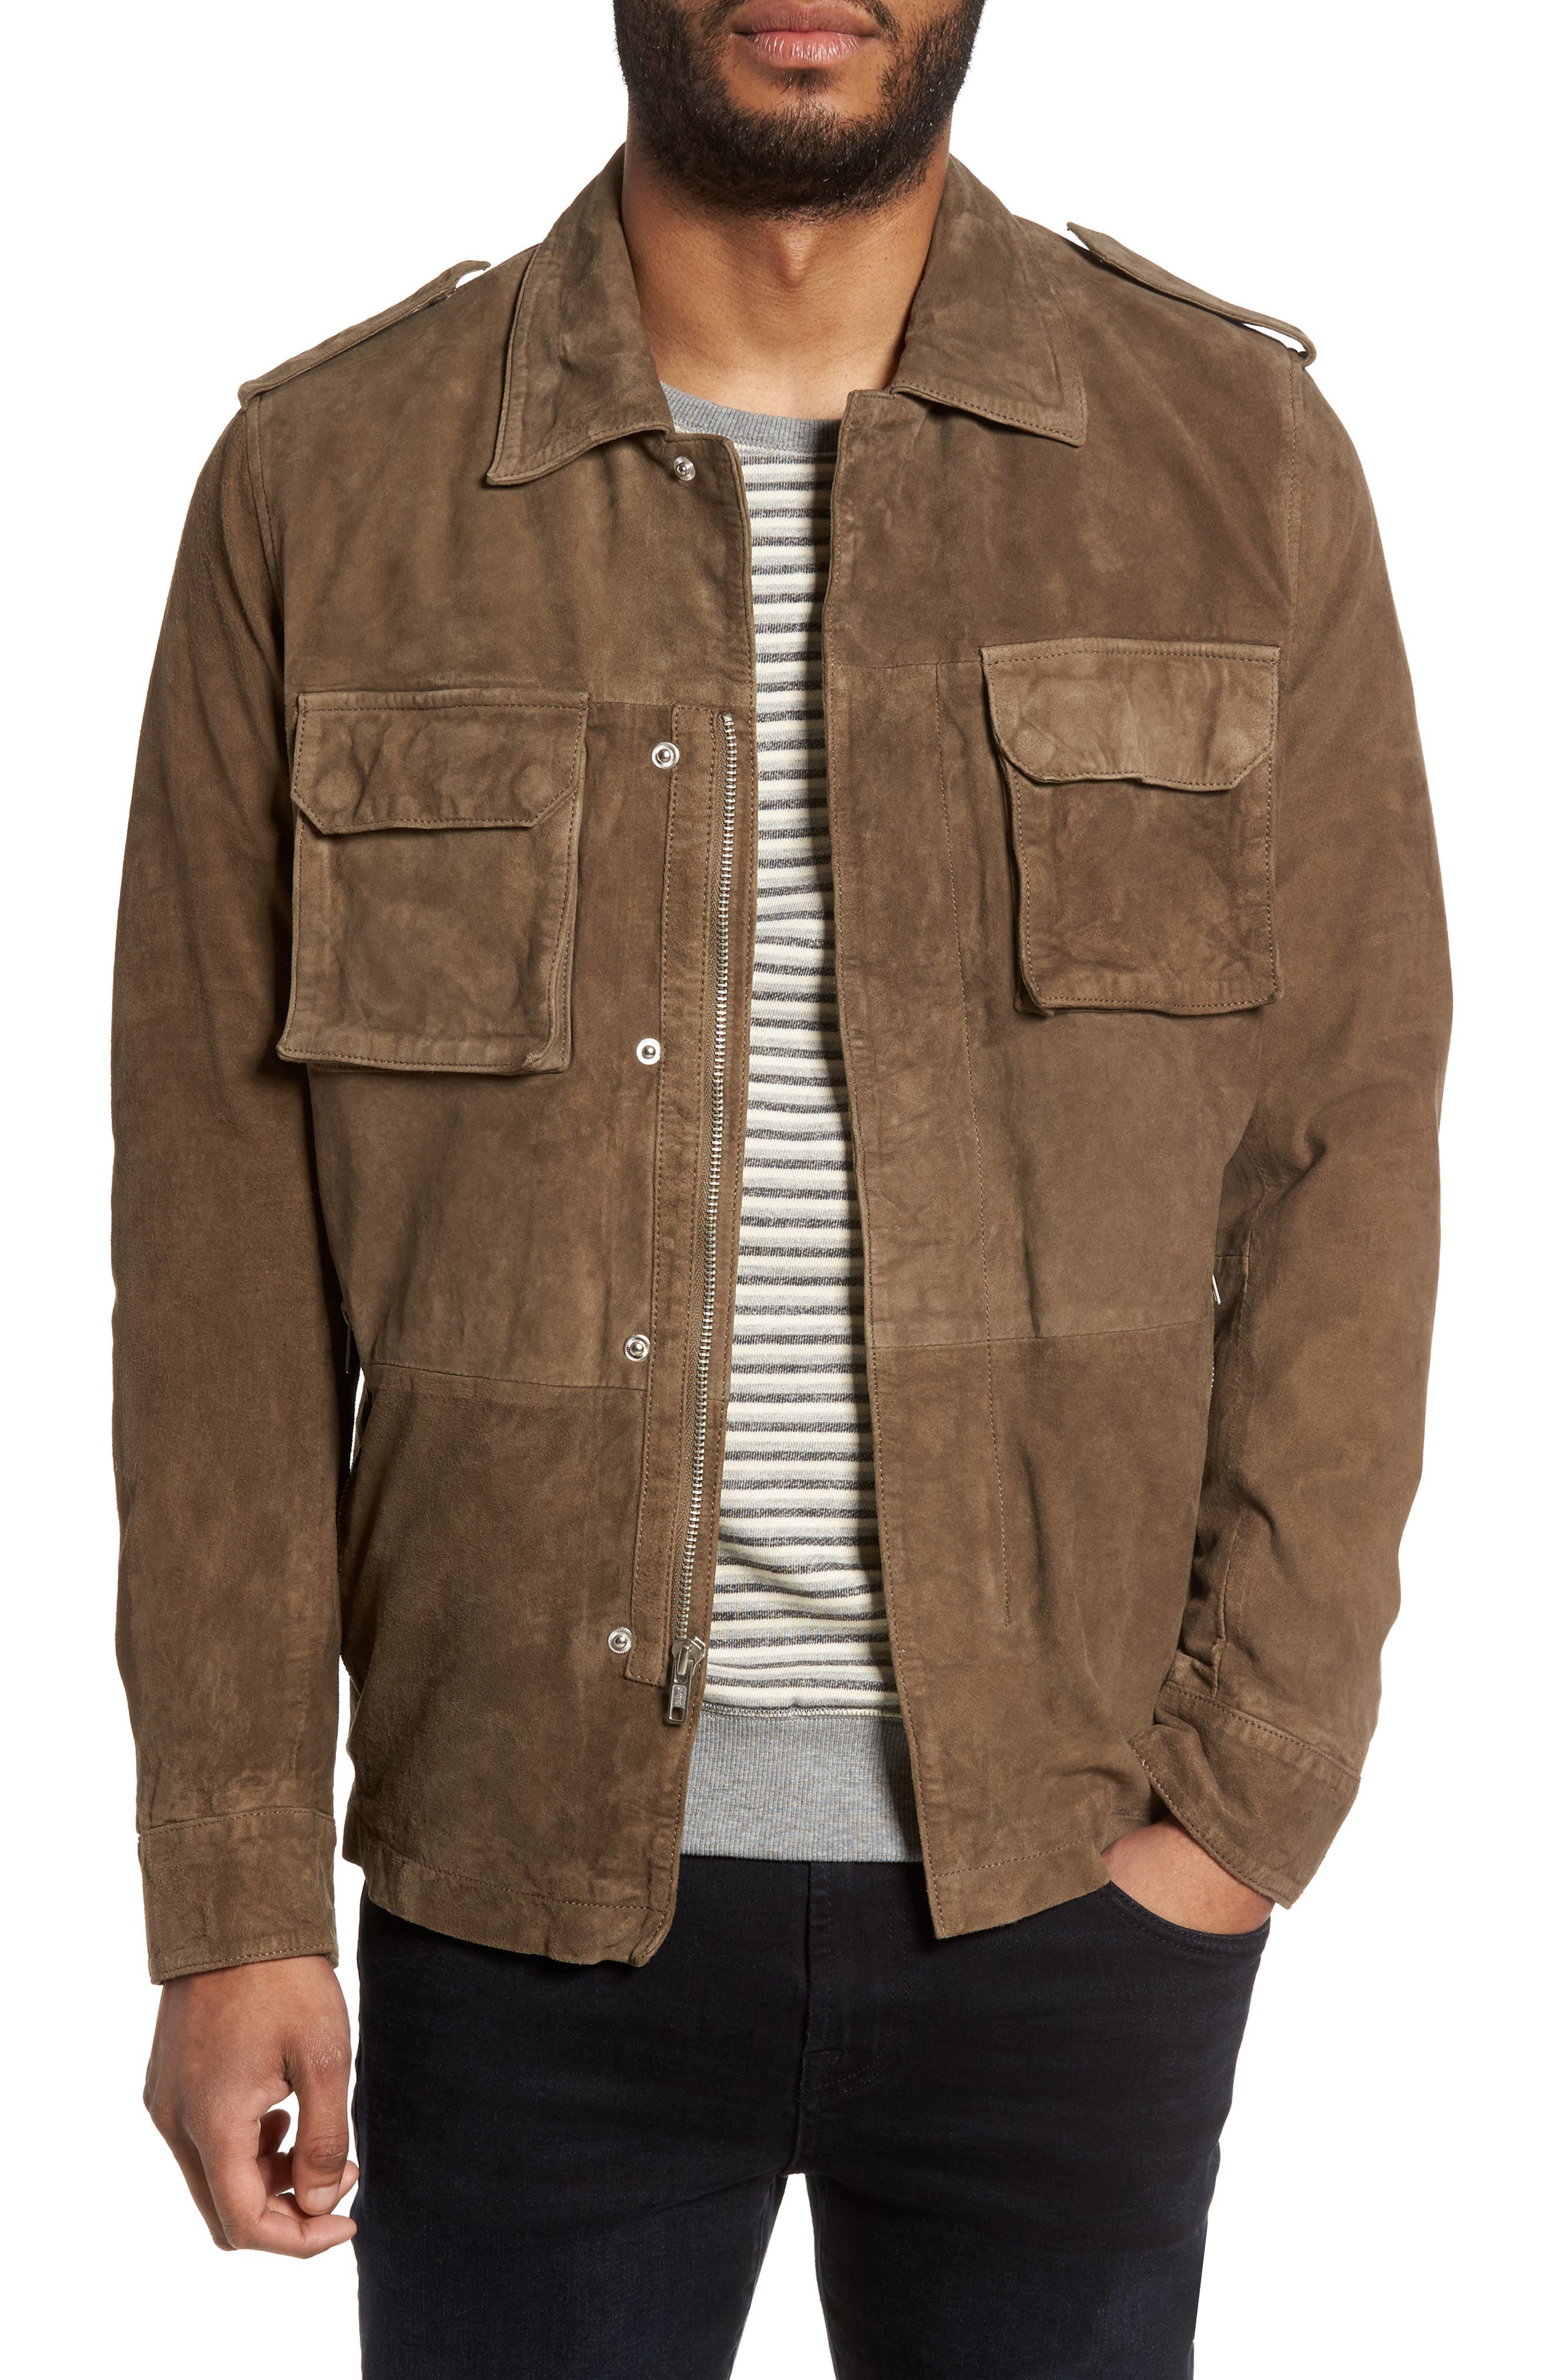 Alternate Image 1 Selected - LAMARQUE Washed Suede Military Shirt Jacket